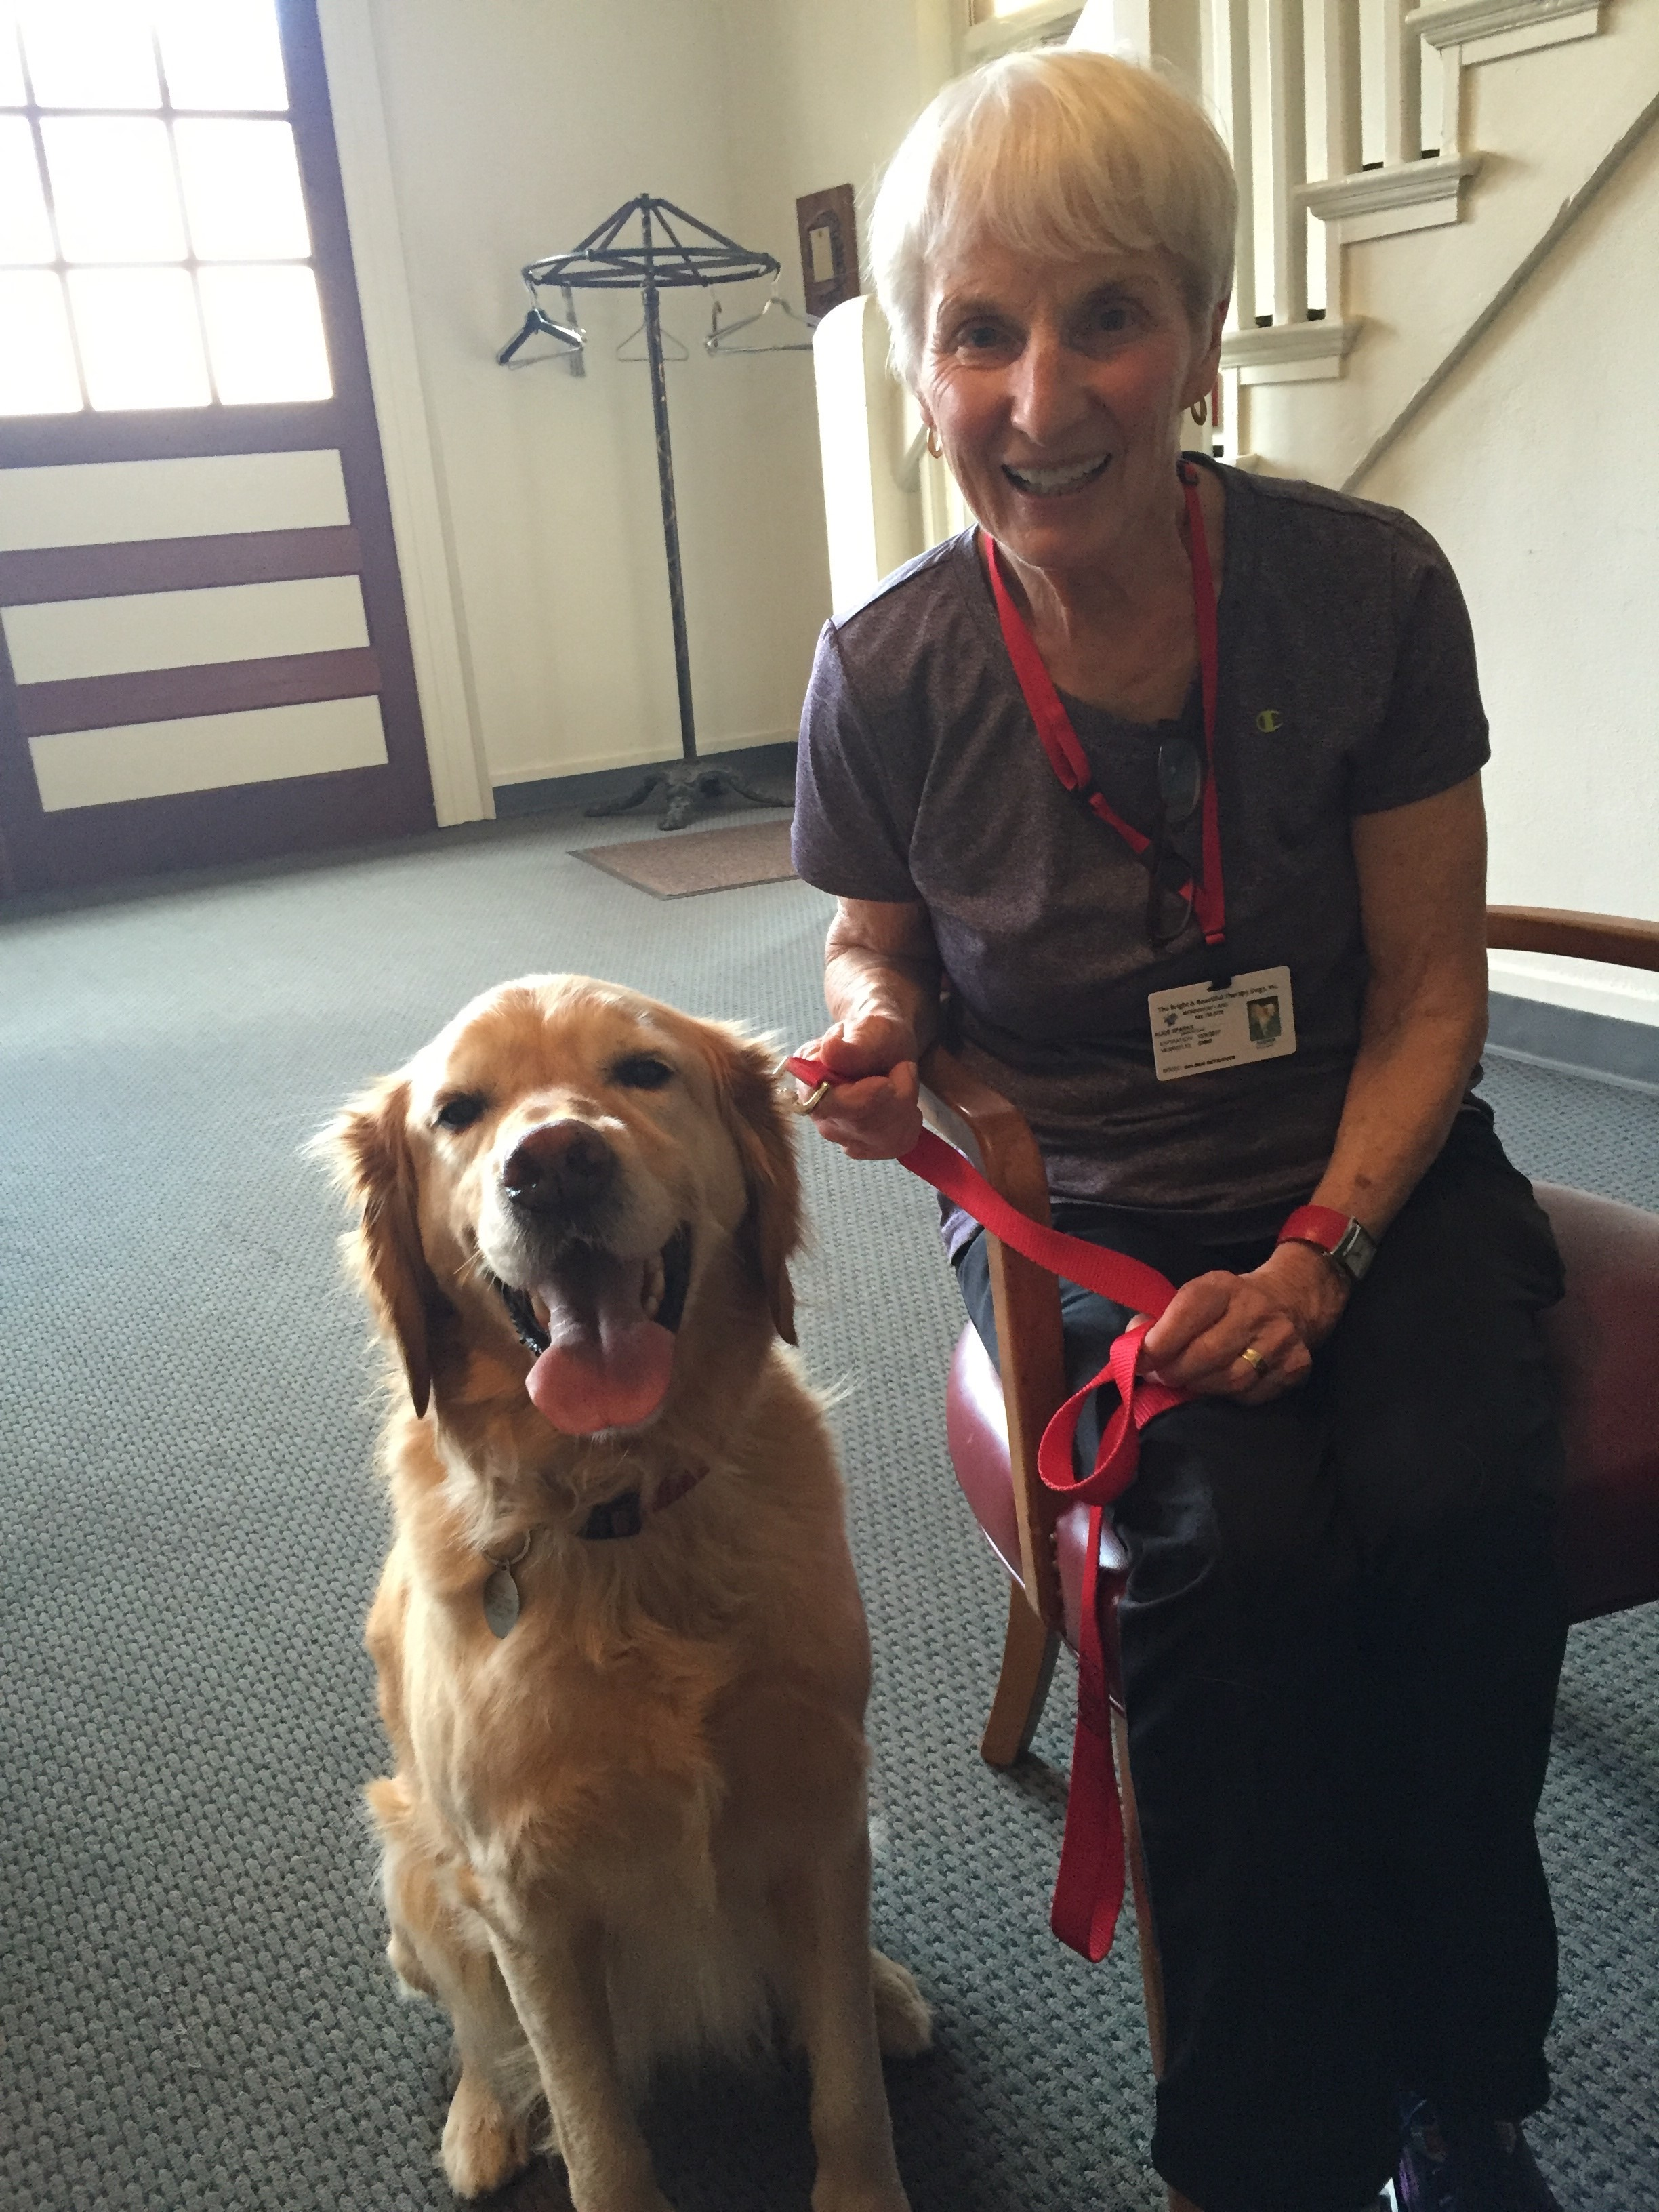 Alice and Keeper - Alice Sparks and Keeper are both sweet, gentle, calm and friendly! Keeper is a 7 year old golden/lab mix.  Alice was an elementary school teacher for 40 years and they are interested in the literacy program and the court program.